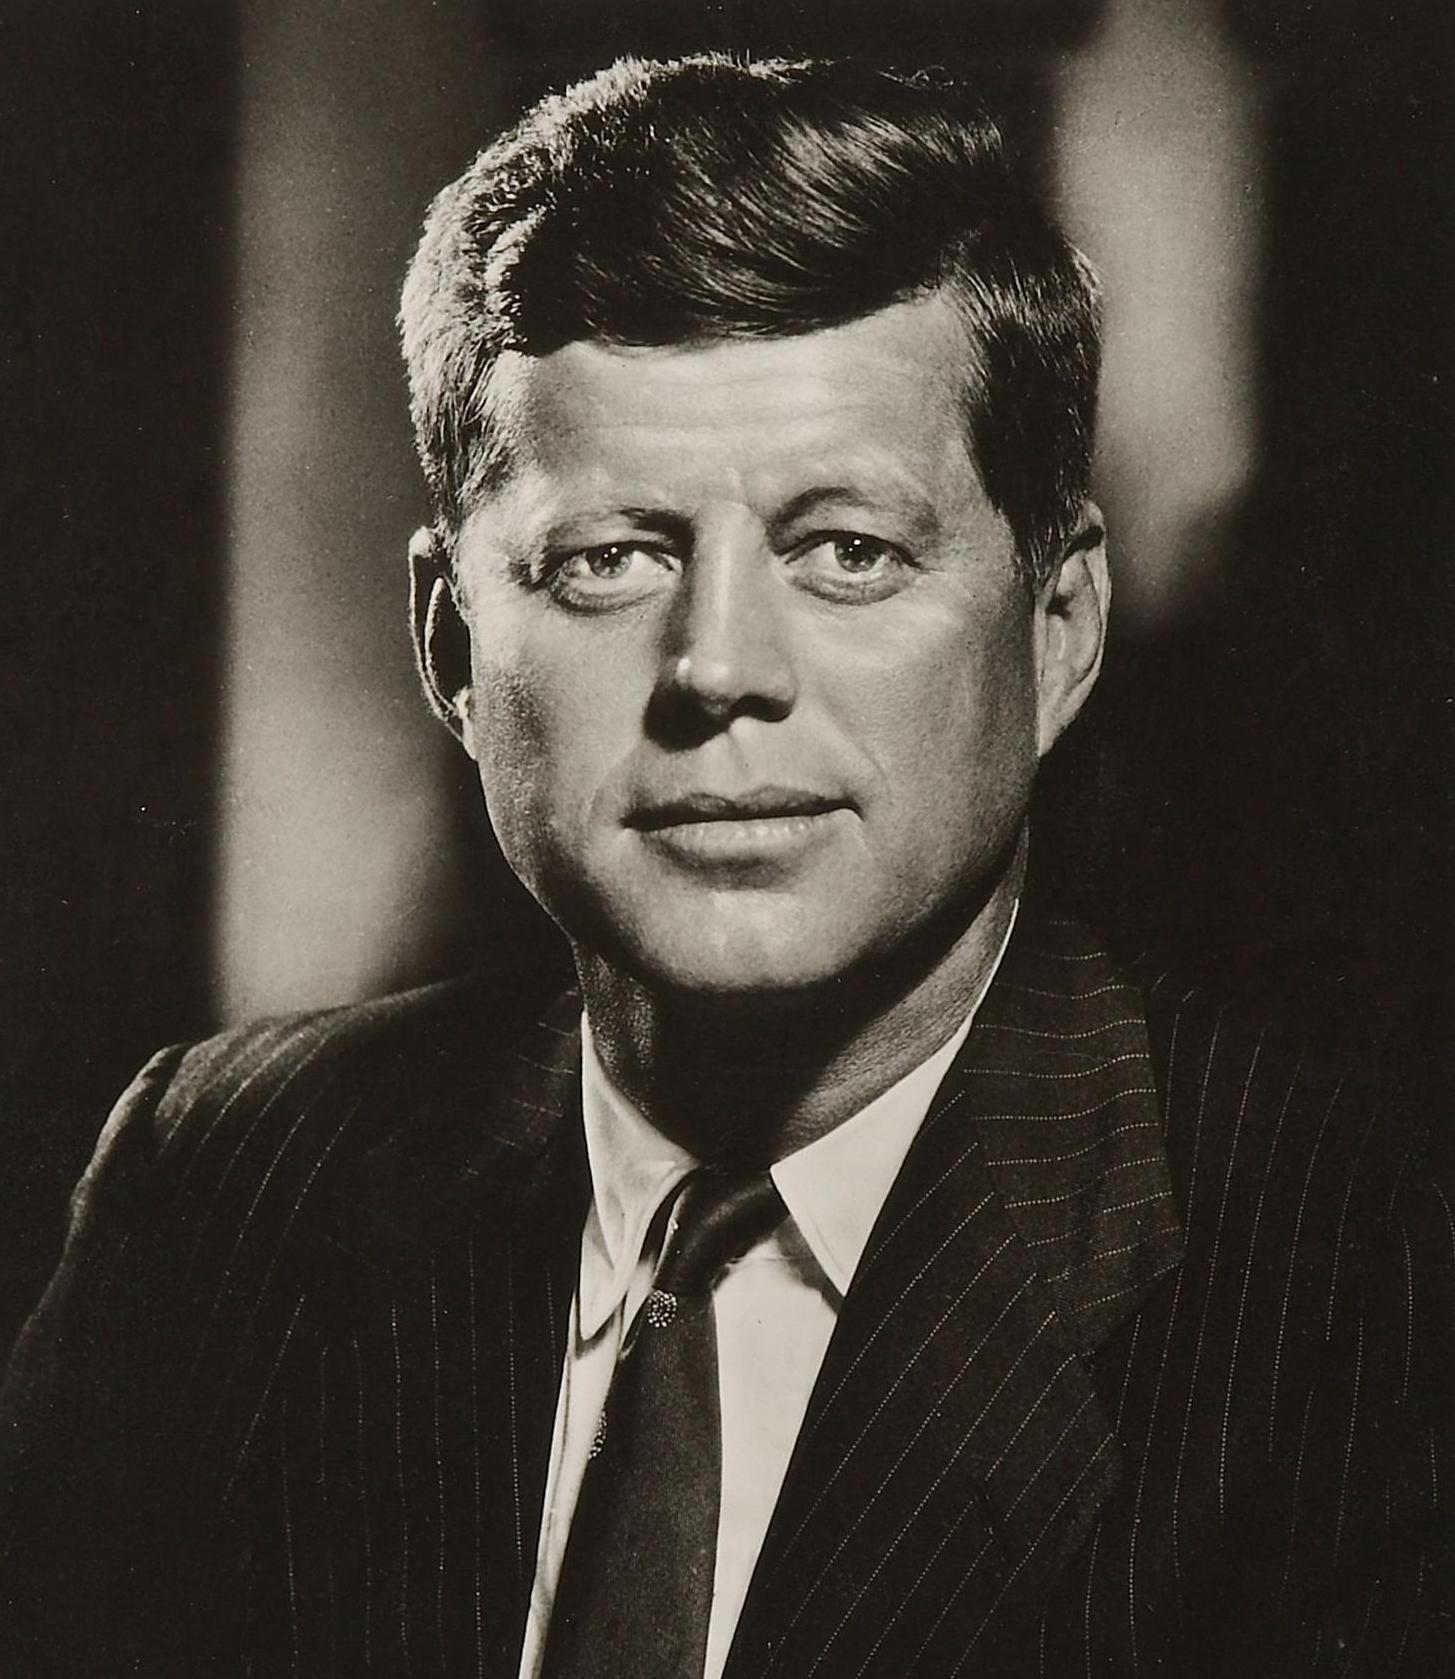 Conspiracy Theorists Eagerly Await Soon to be Released JFK Assassination Files